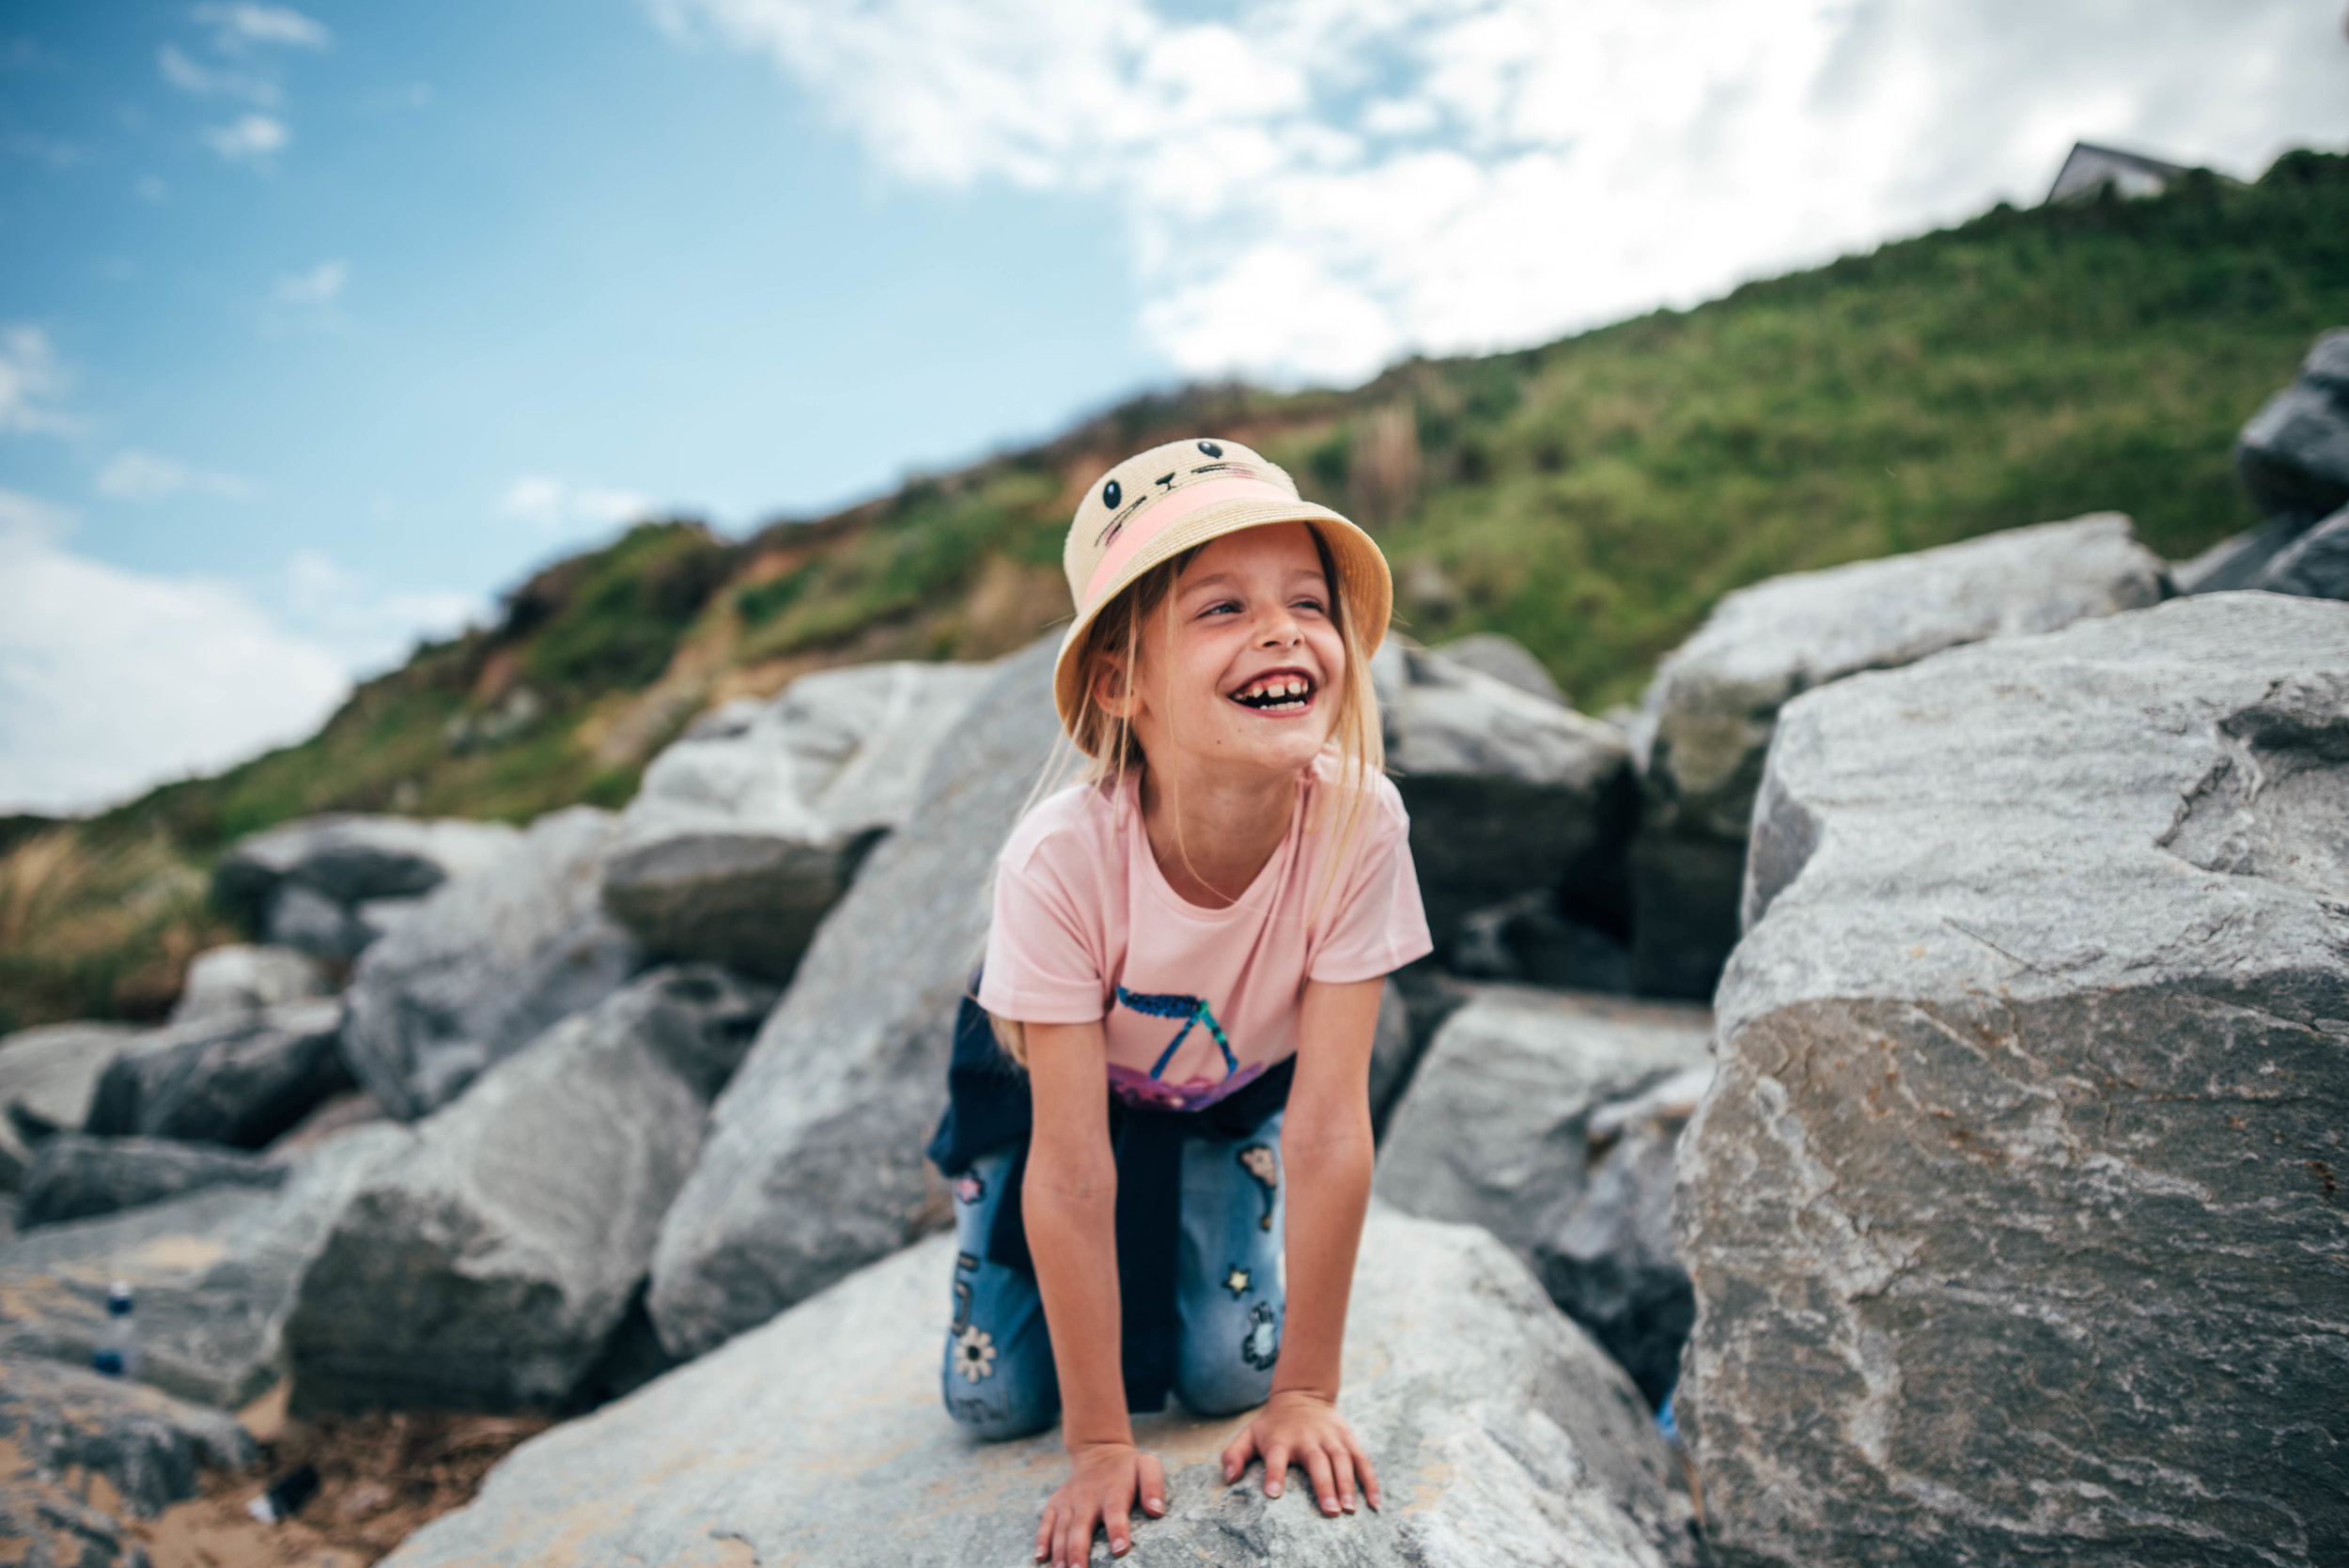 little girl on rocky beach in sunhat Essex UK Documentary Lifestyle Portrait Photographerw